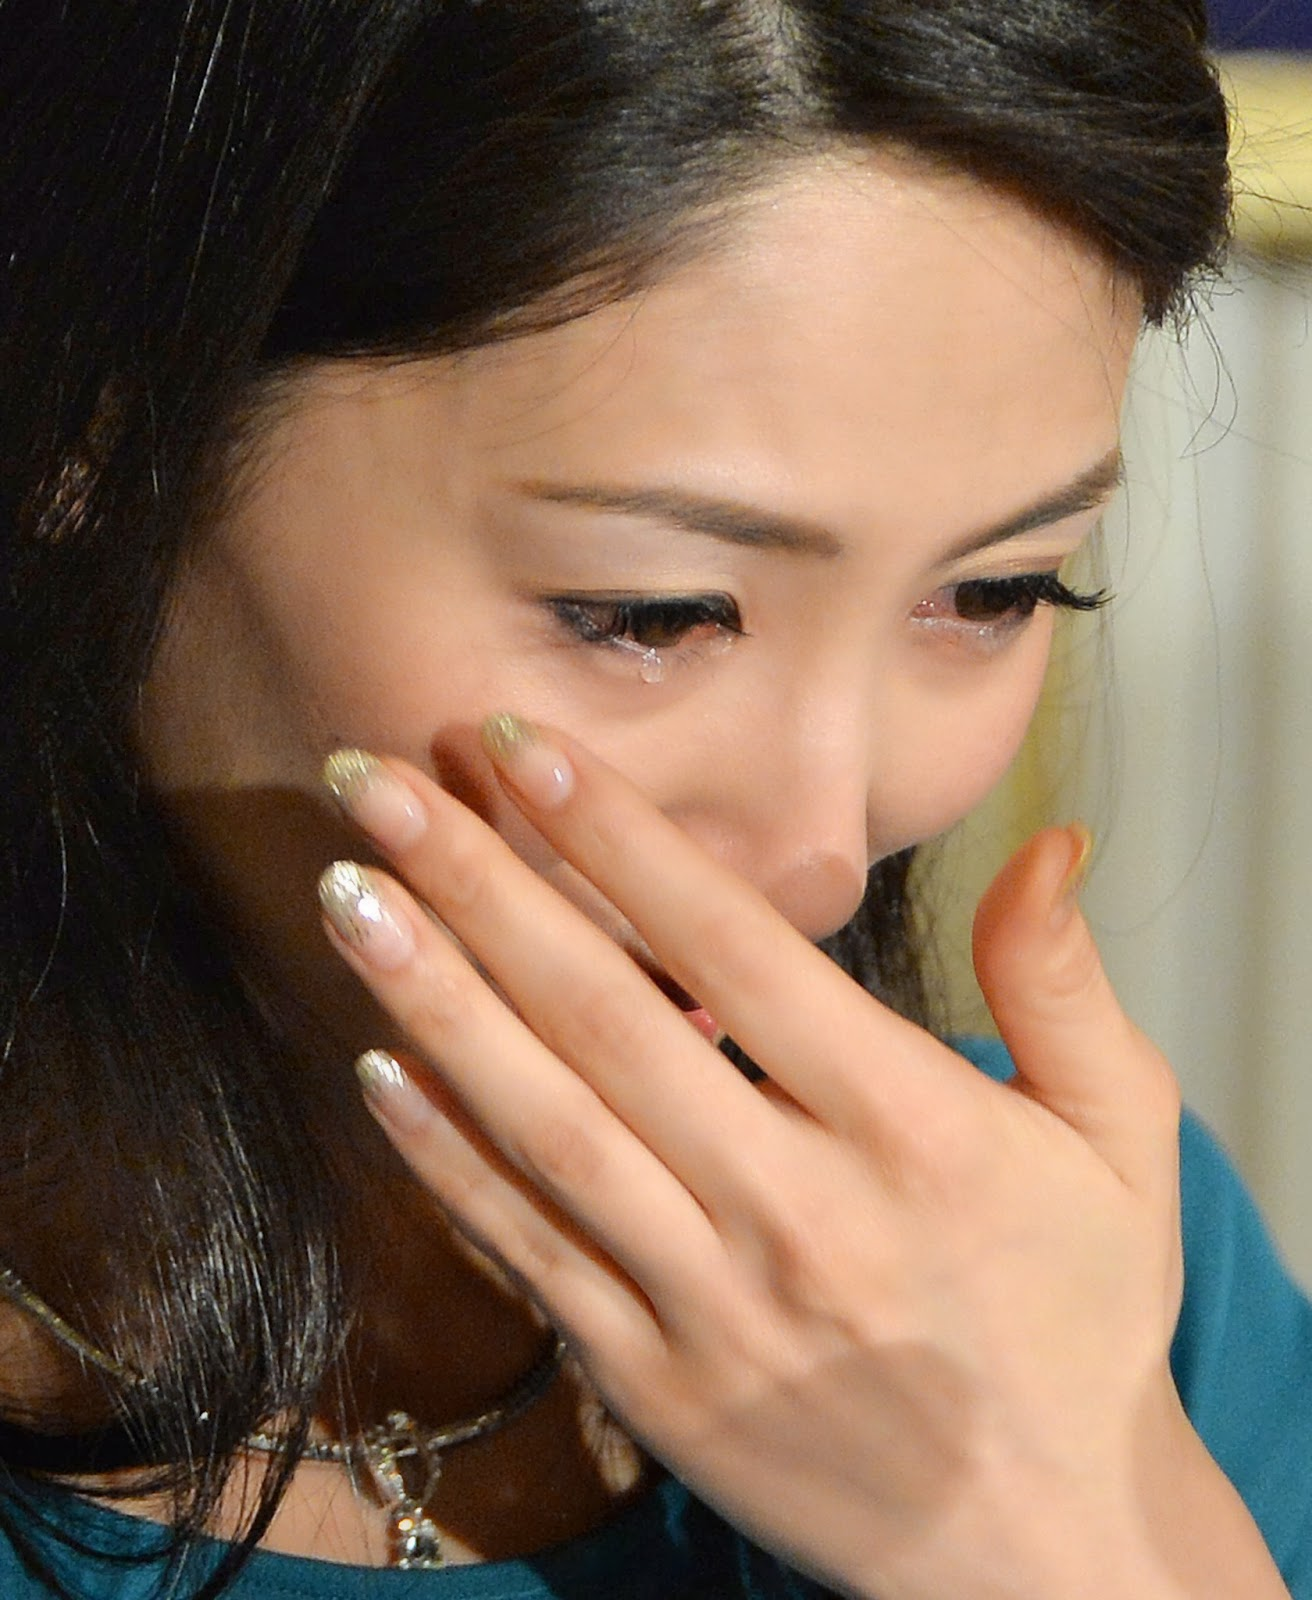 Beauty, Celebrities, Century, Harassment, Ikumi Yoshimatsu, Japan, Miss, Miss International-2012, Queen, Showbiz, Suffering, Tokyo, Victims, Weeping,